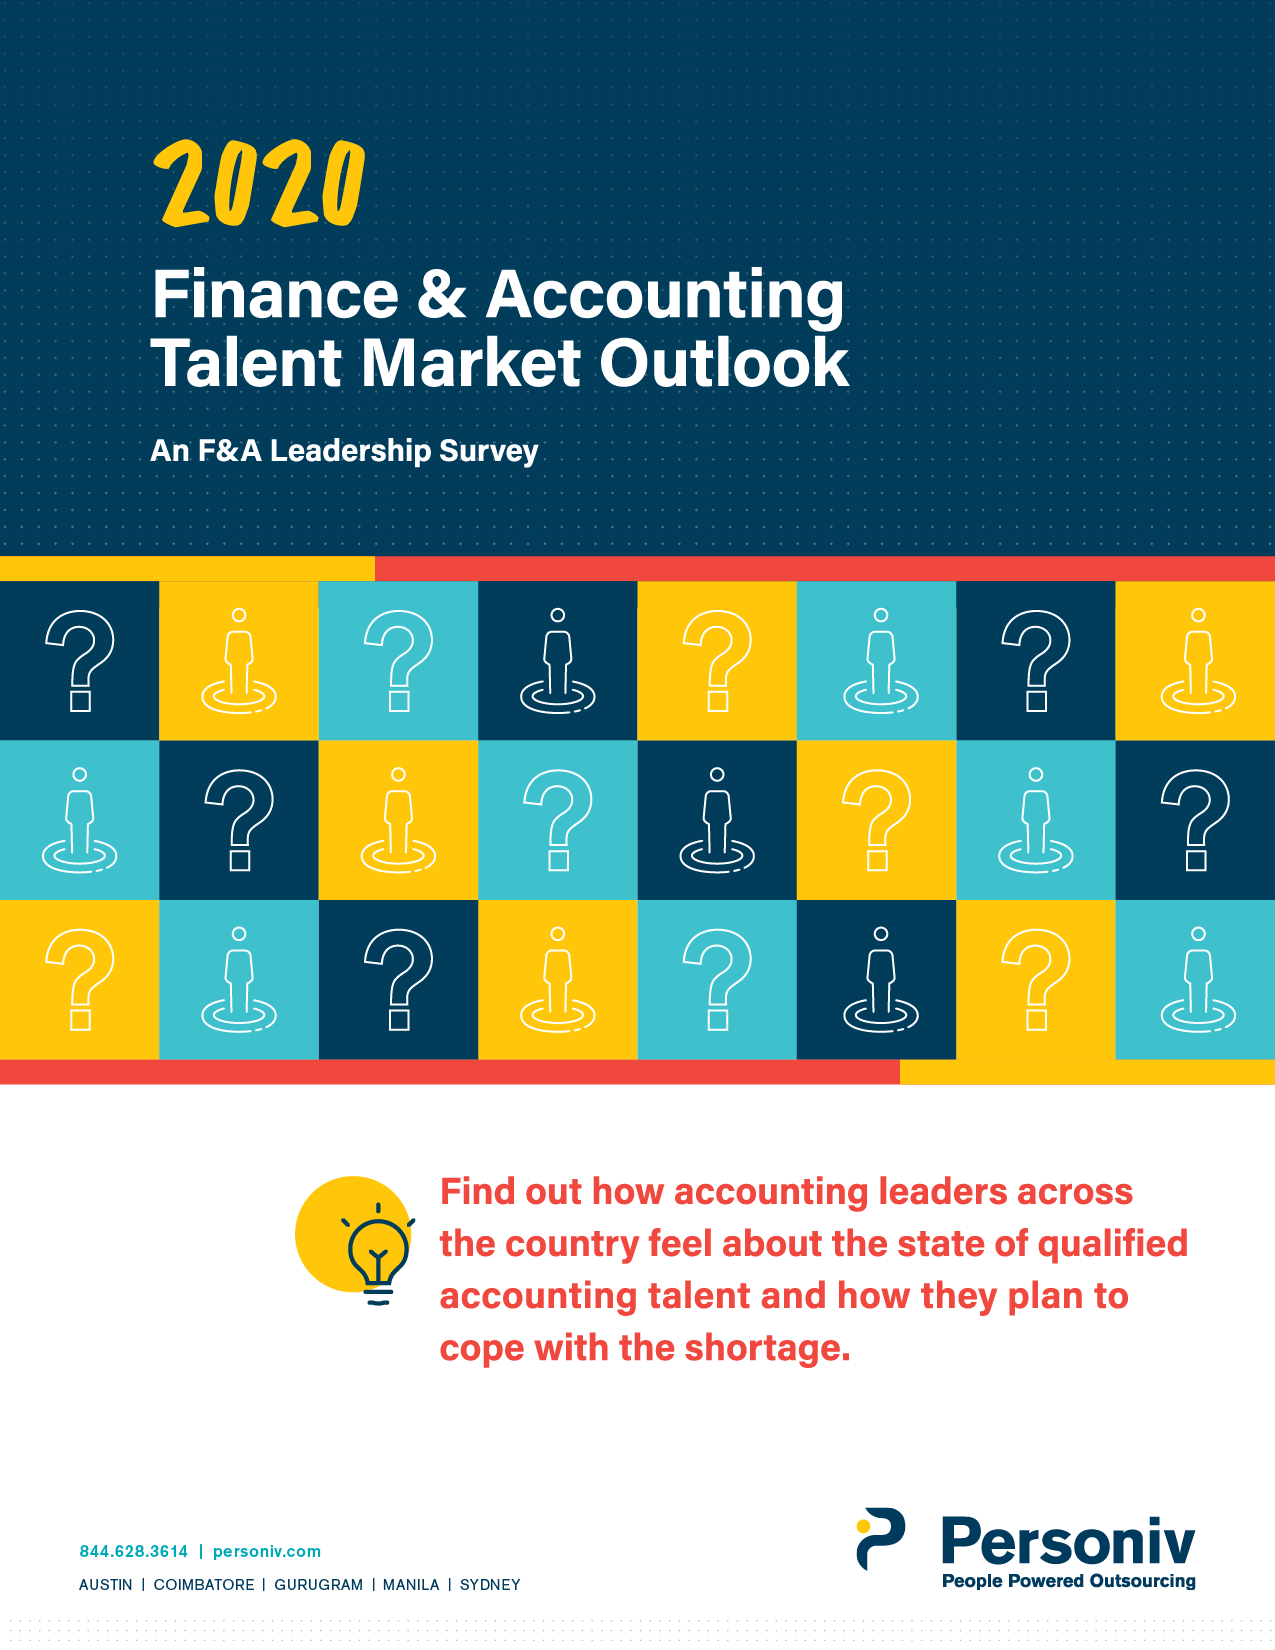 Finance & Accounting Talent Market Outlook